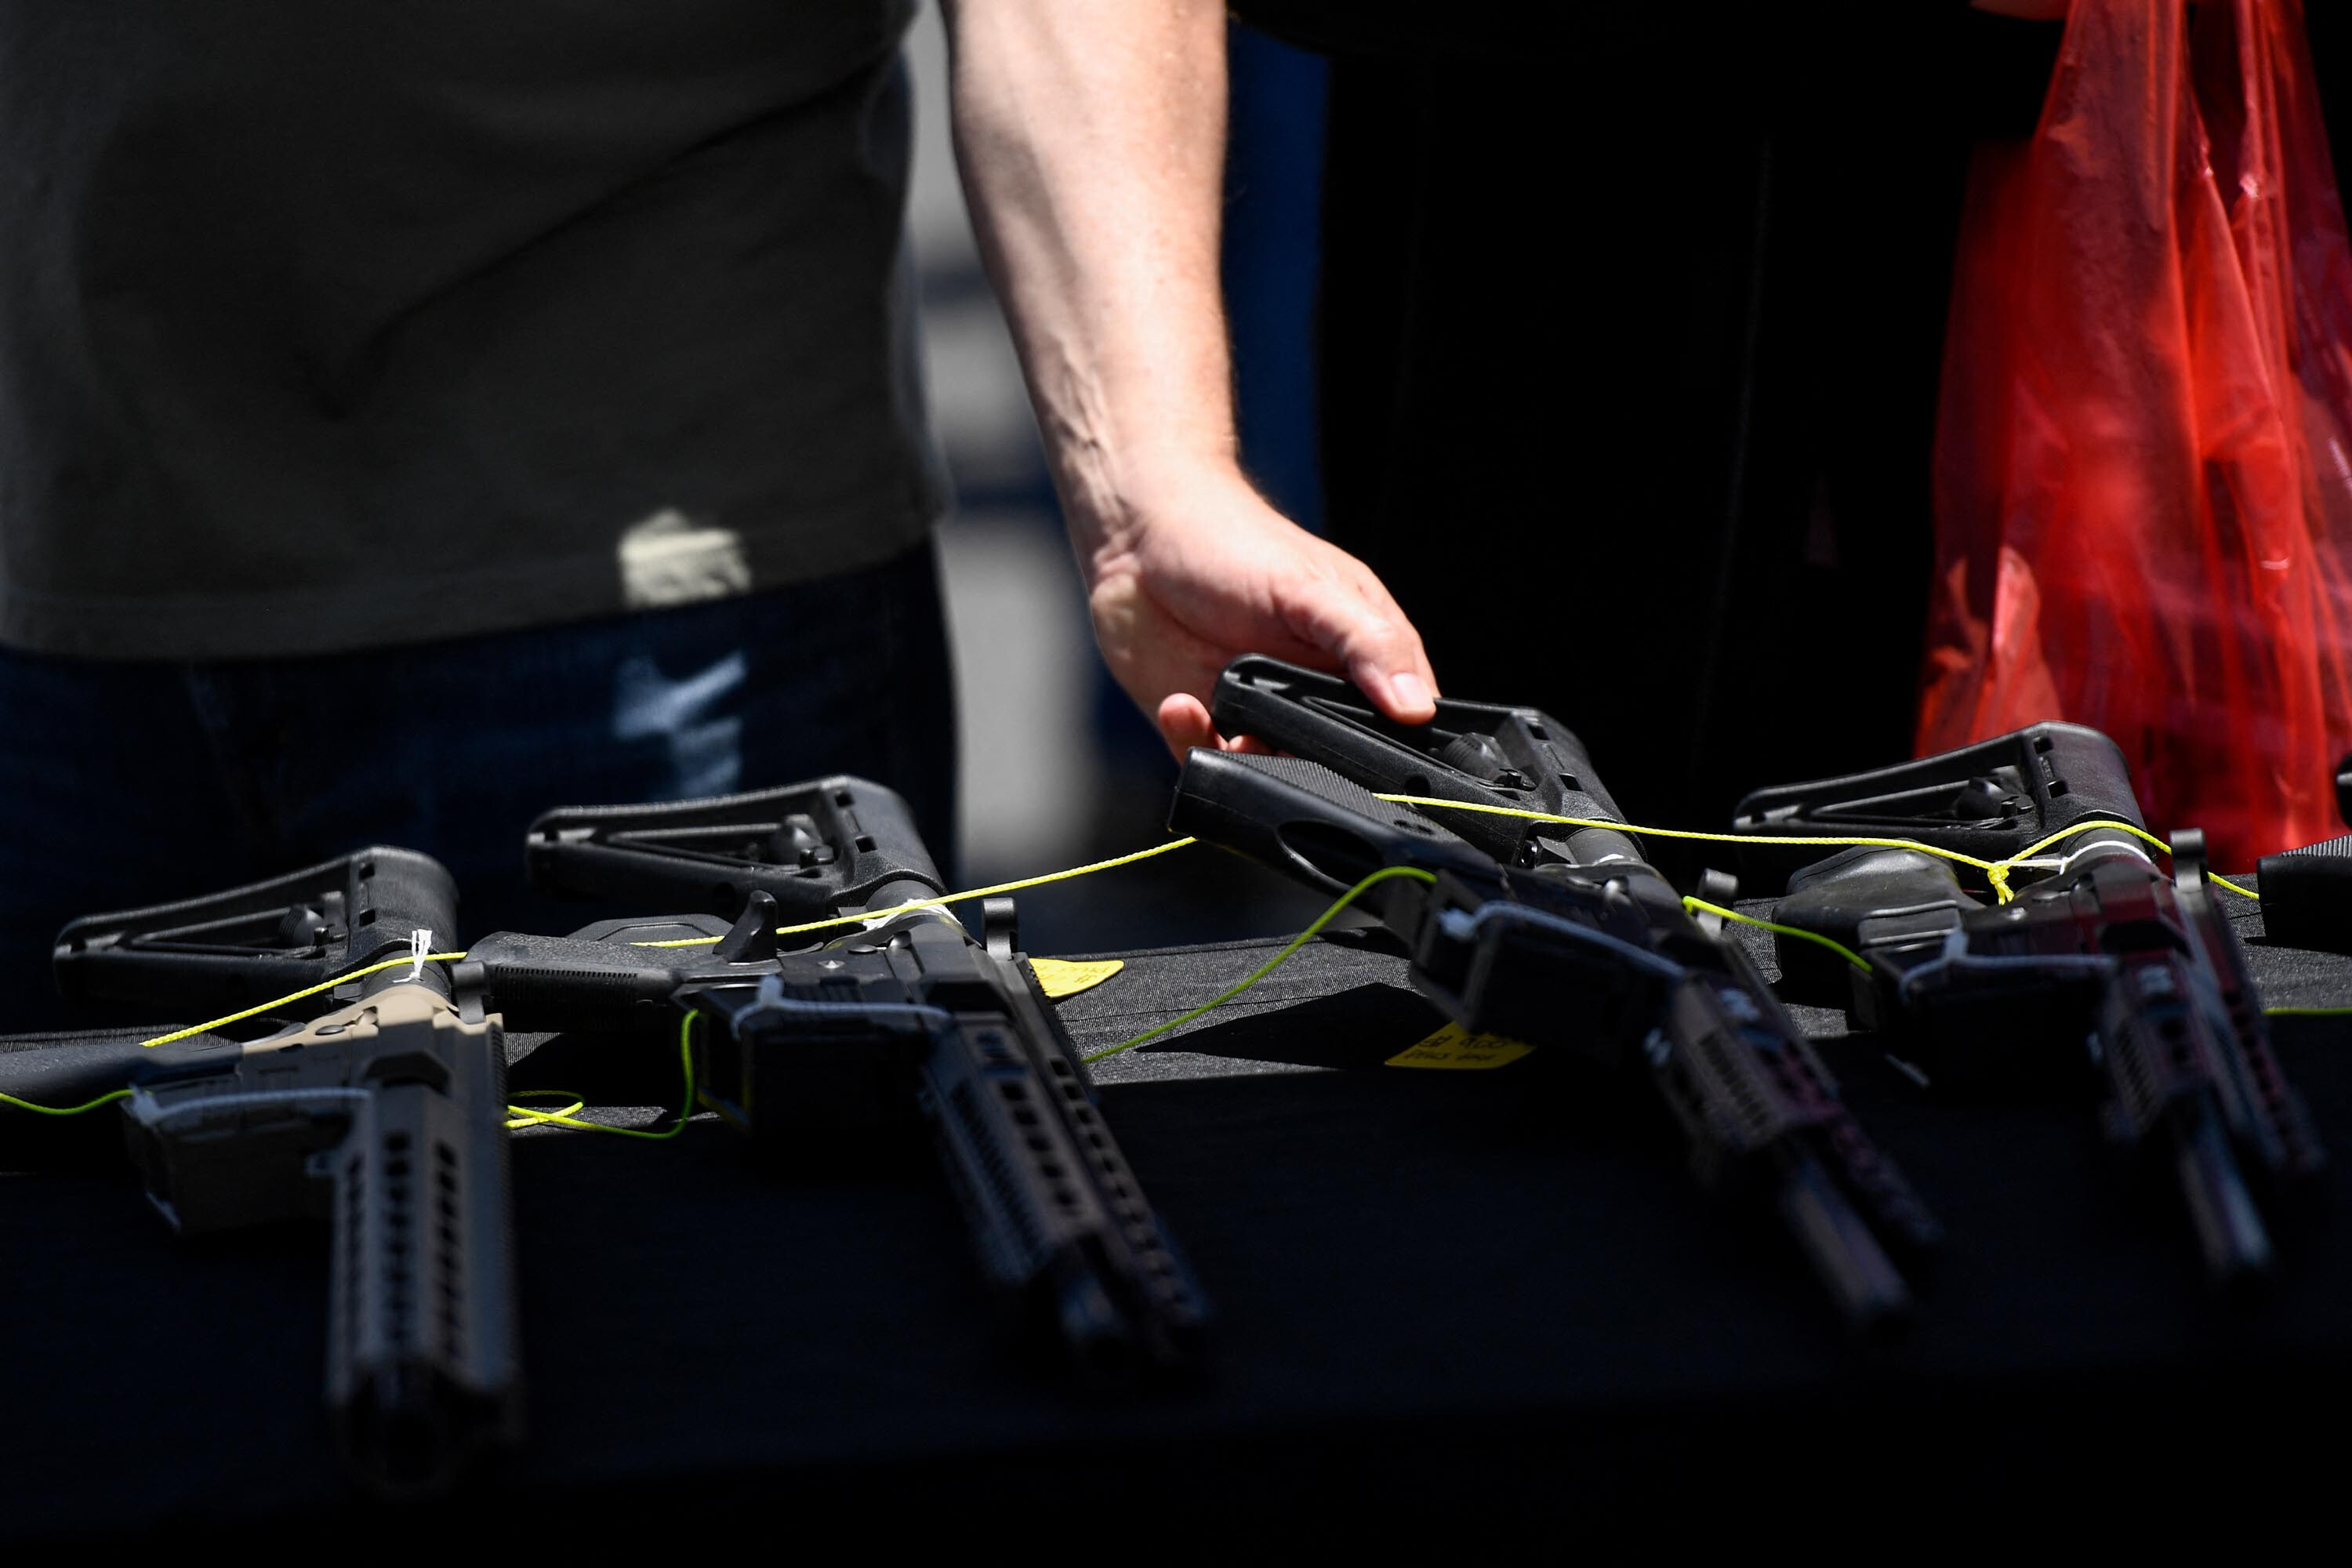 The spike in gun violence continues, with 2021 on pace to be the worst year in decades